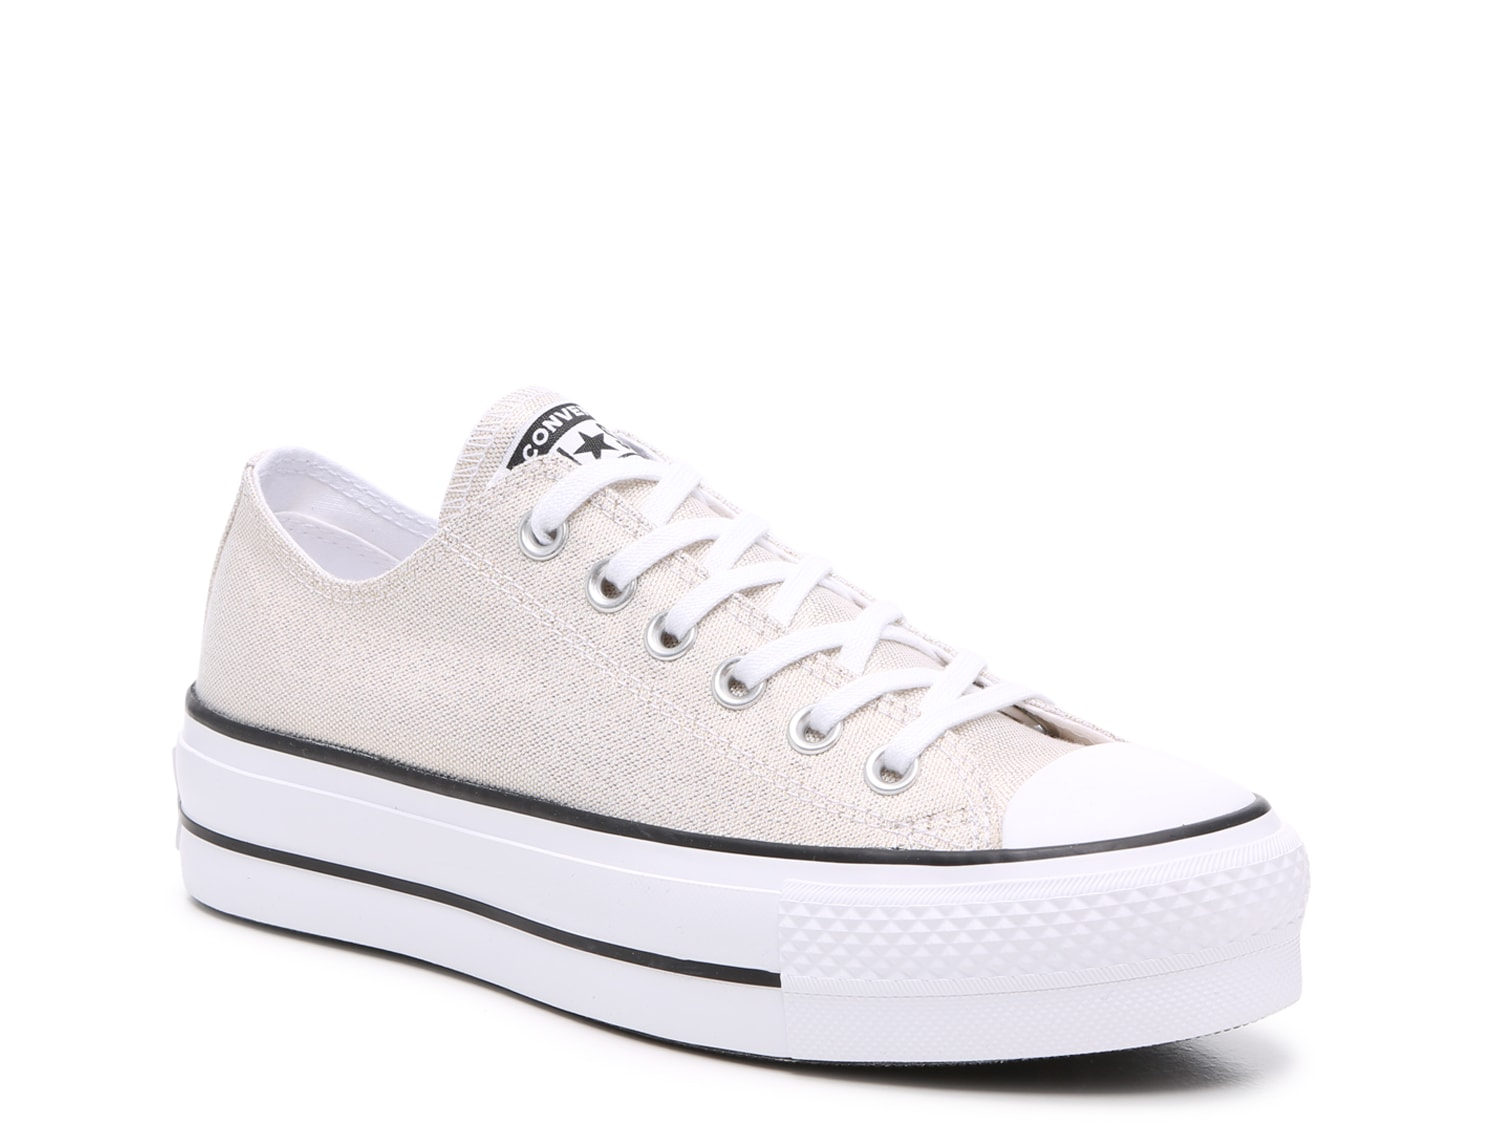 nuovo anno Bacca Borgogna  Converse Chuck Taylor All Star Ox Platform Sneaker - Women's Women's Shoes  | DSW